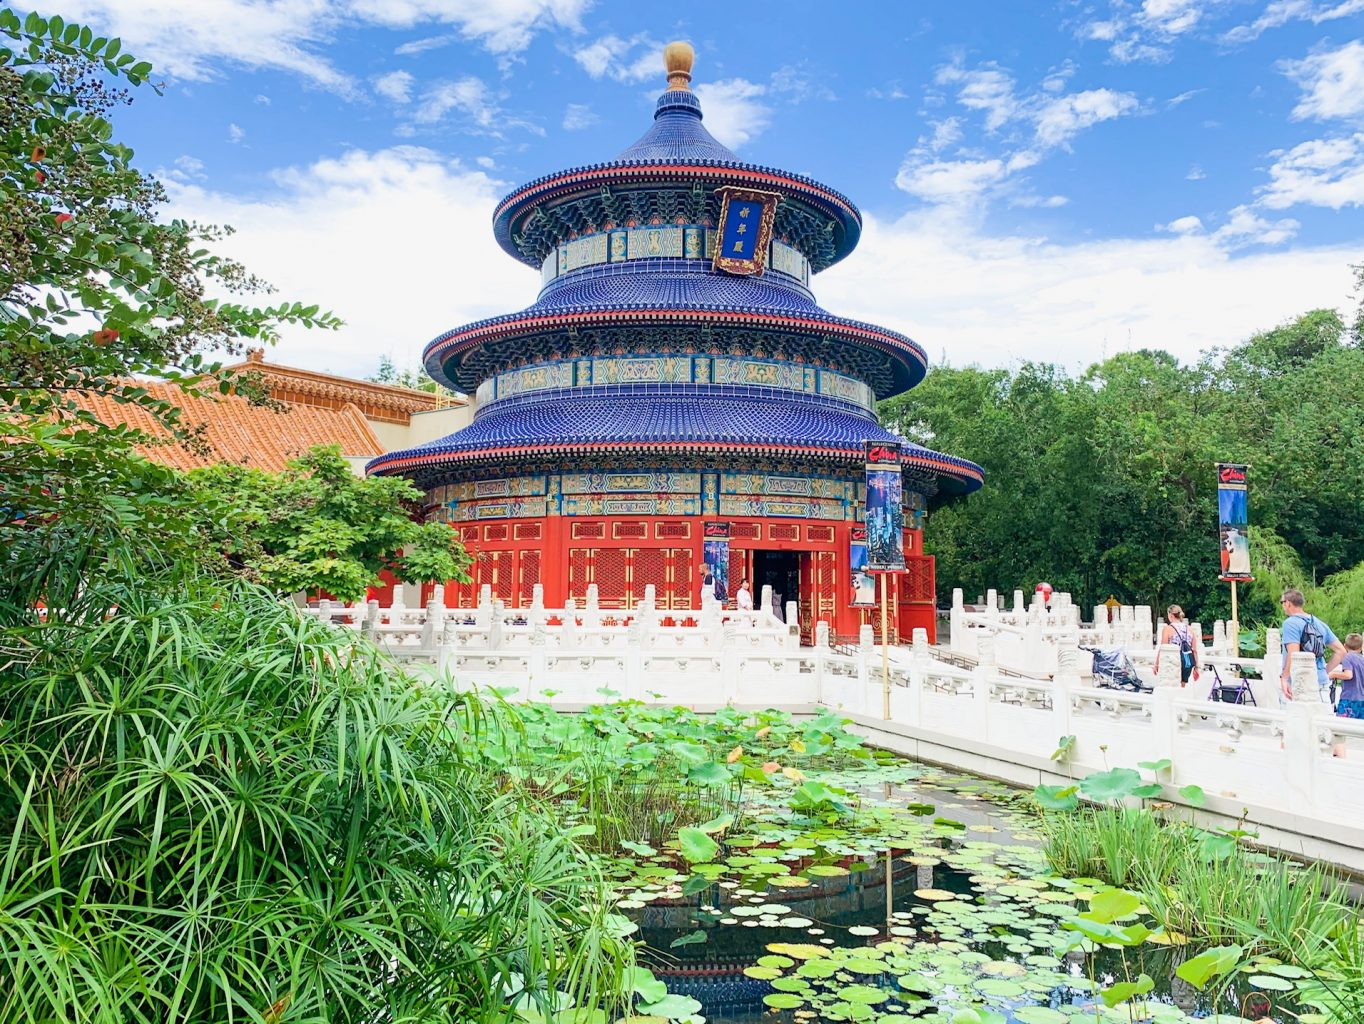 China is a quiet place in the park to rest with autism at Disney